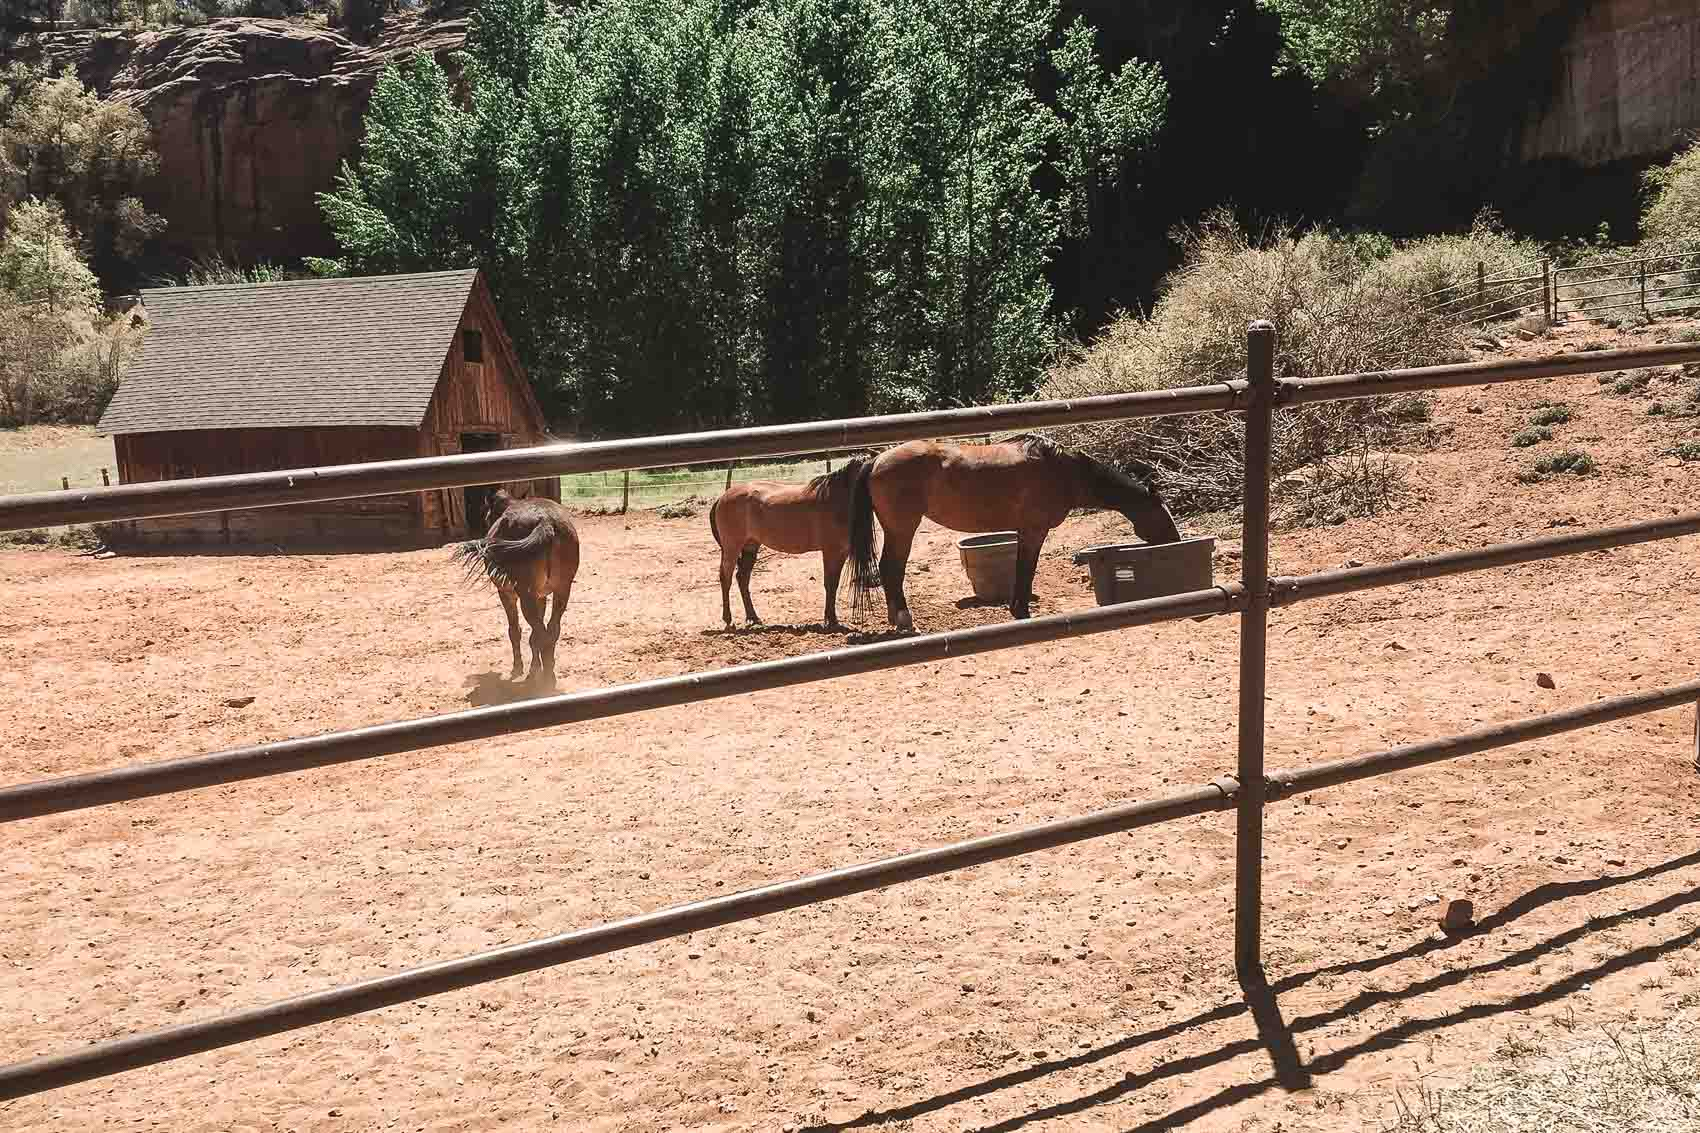 Three horses in a fenced in area near a barn in Best Friends Animal Sanctuary in Utah - bucket list travel